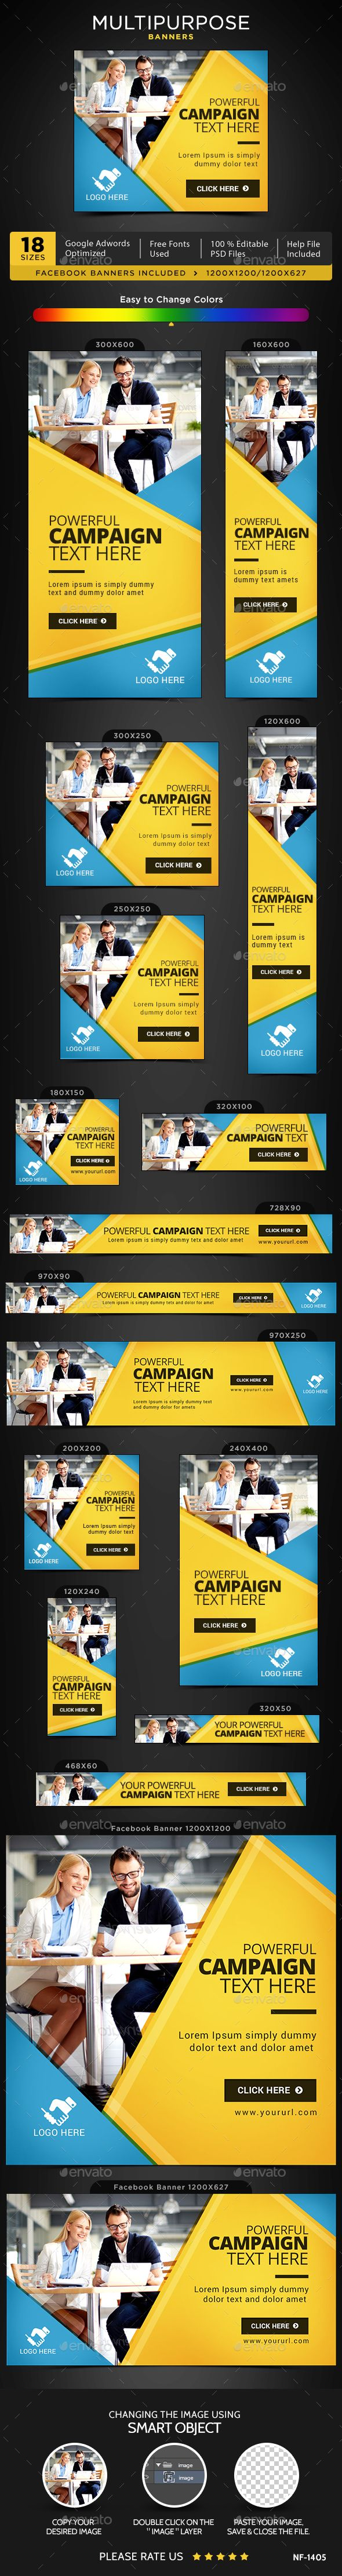 Multipurpose Banners Design - Banners & Ads Web Template PSD. Download here: http://graphicriver.net/item/multipurpose-banners/16936092?ref=yinkira